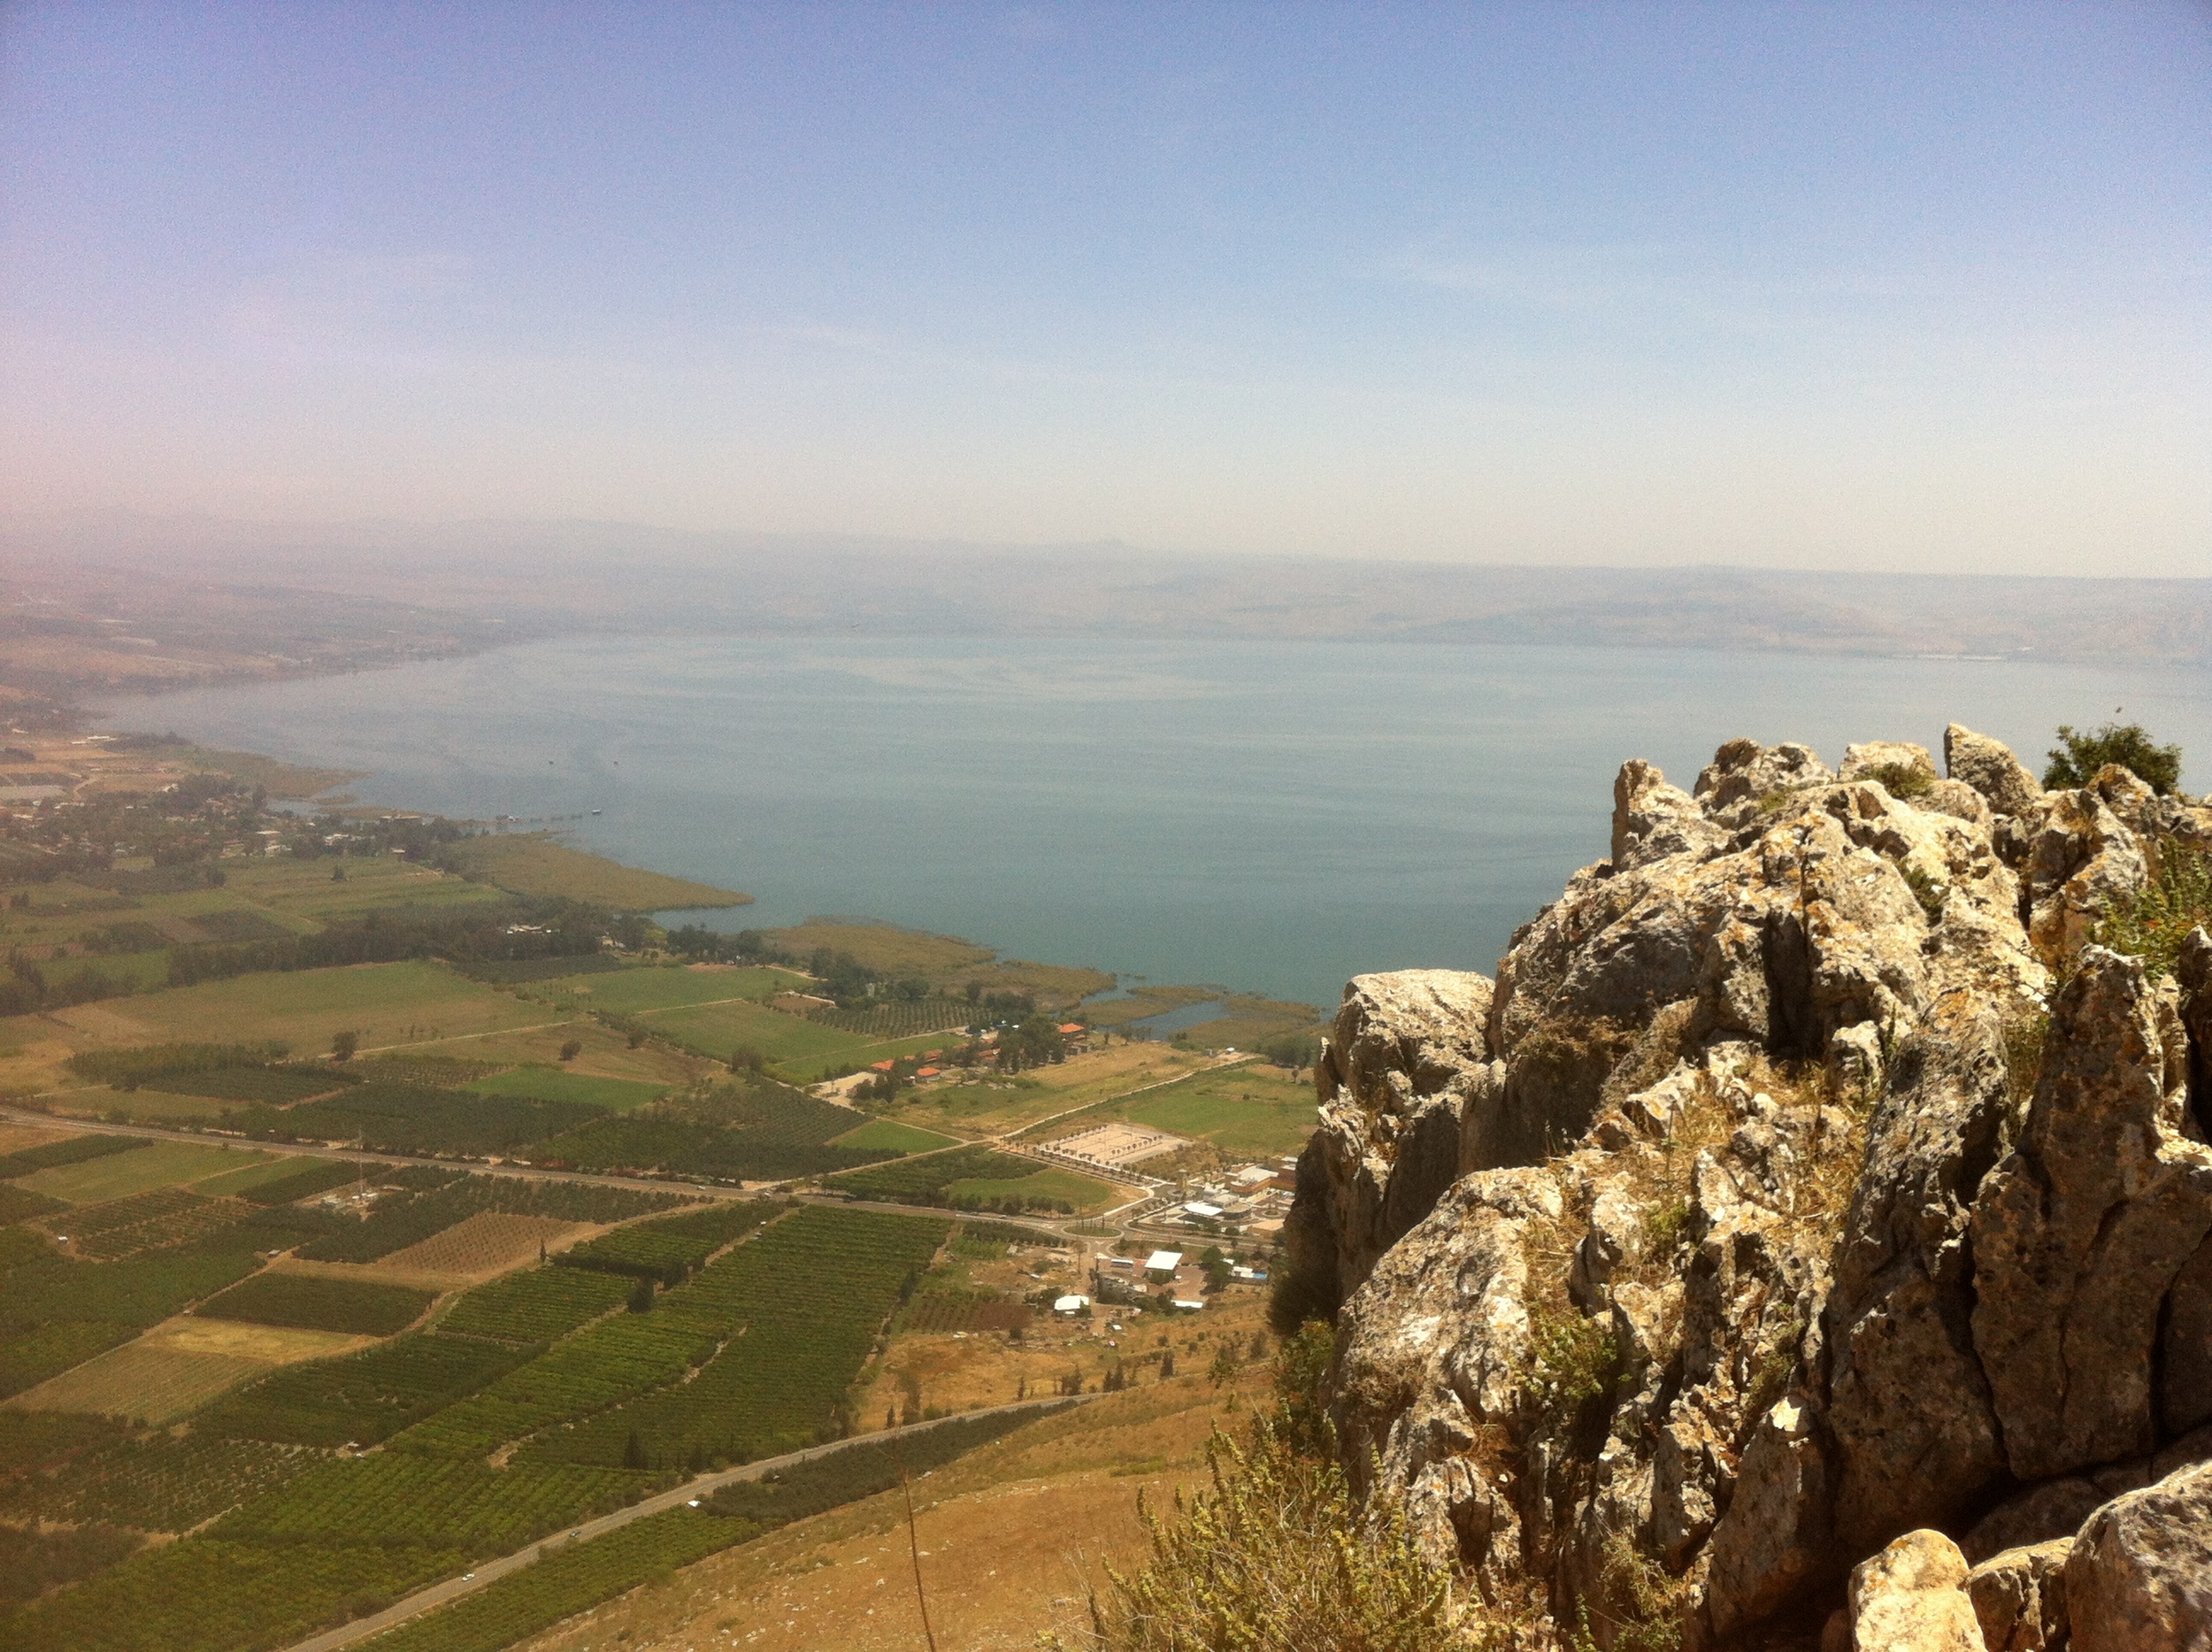 Sea of Galilee from the hillside